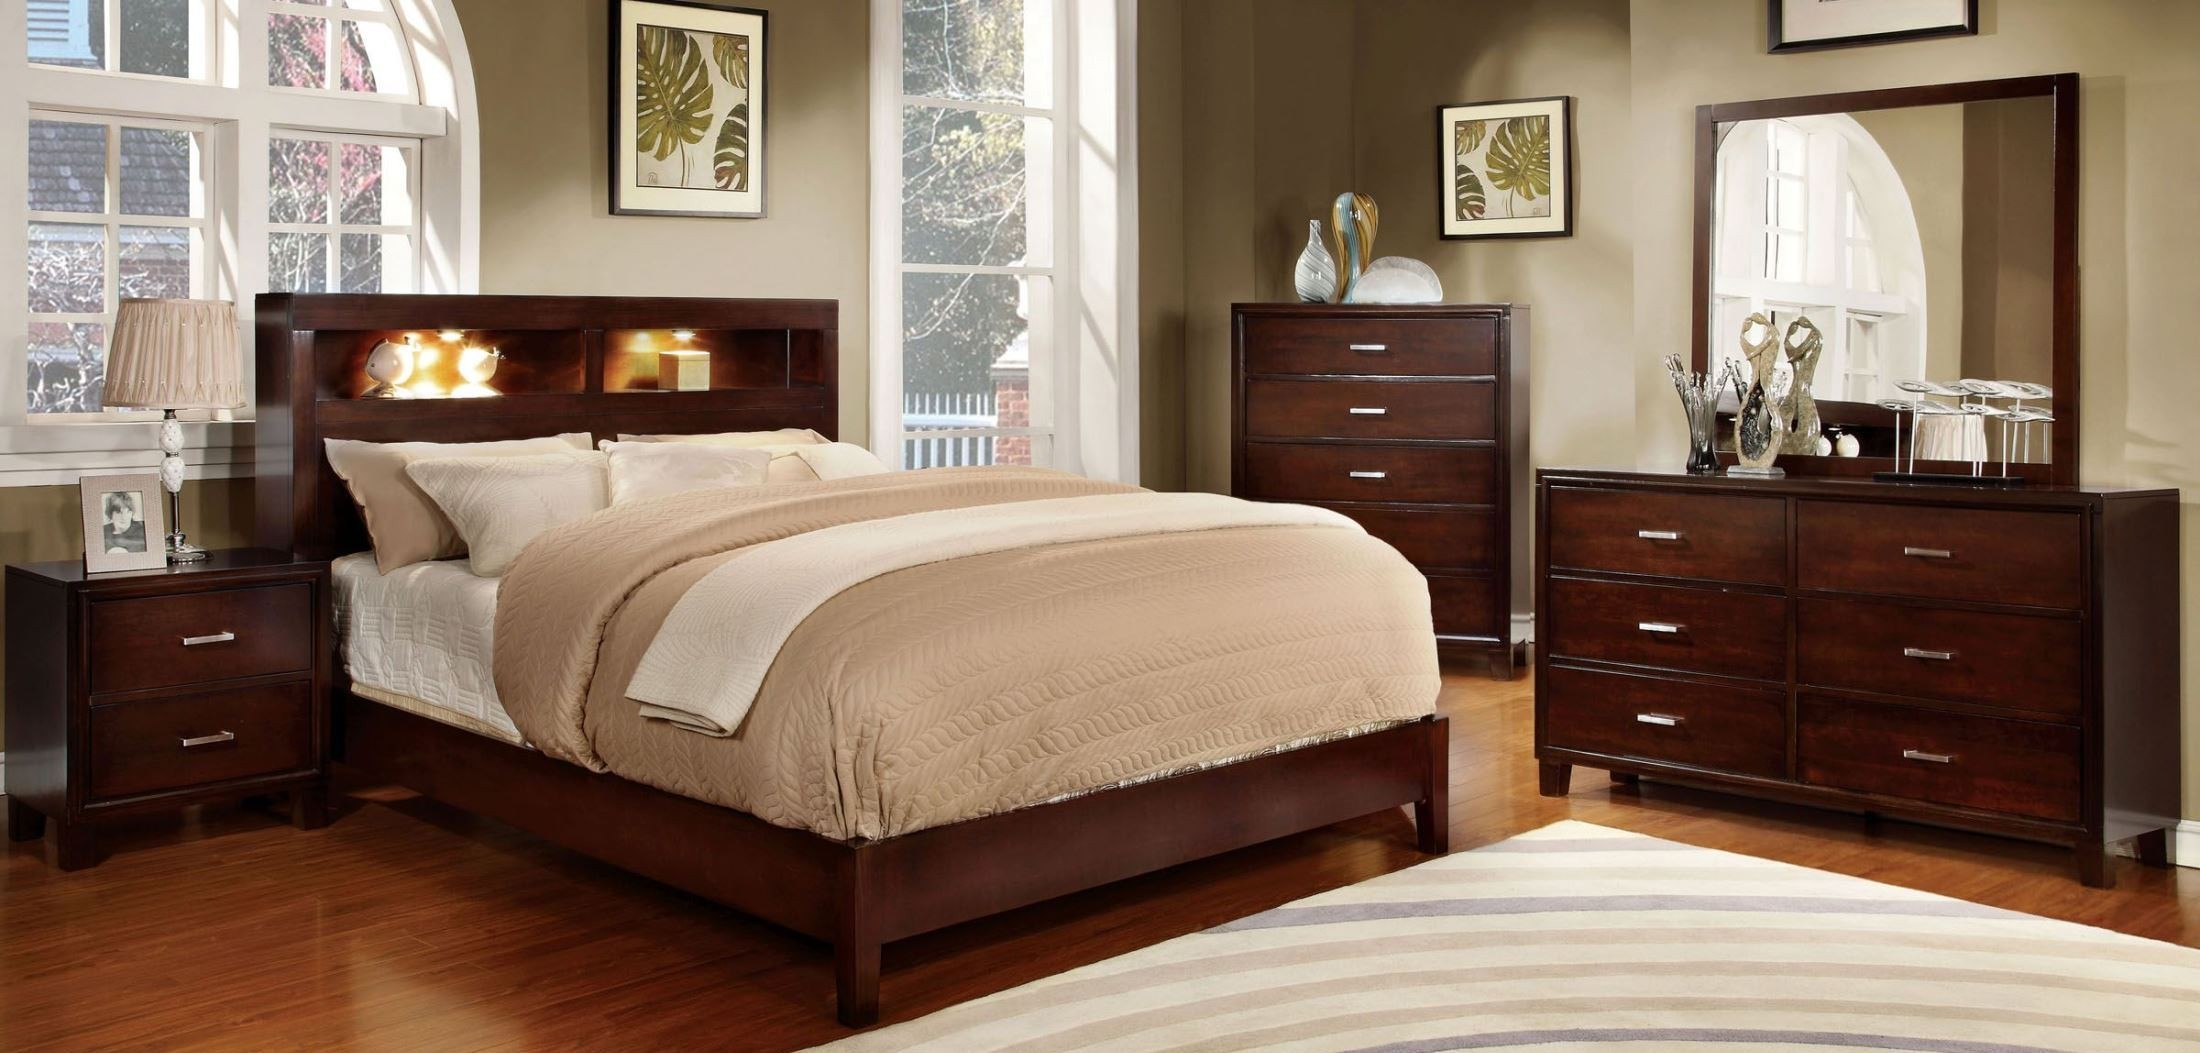 Gerico I Brown Cherry Bedroom Set from Furniture of America CM7290CH Q BED